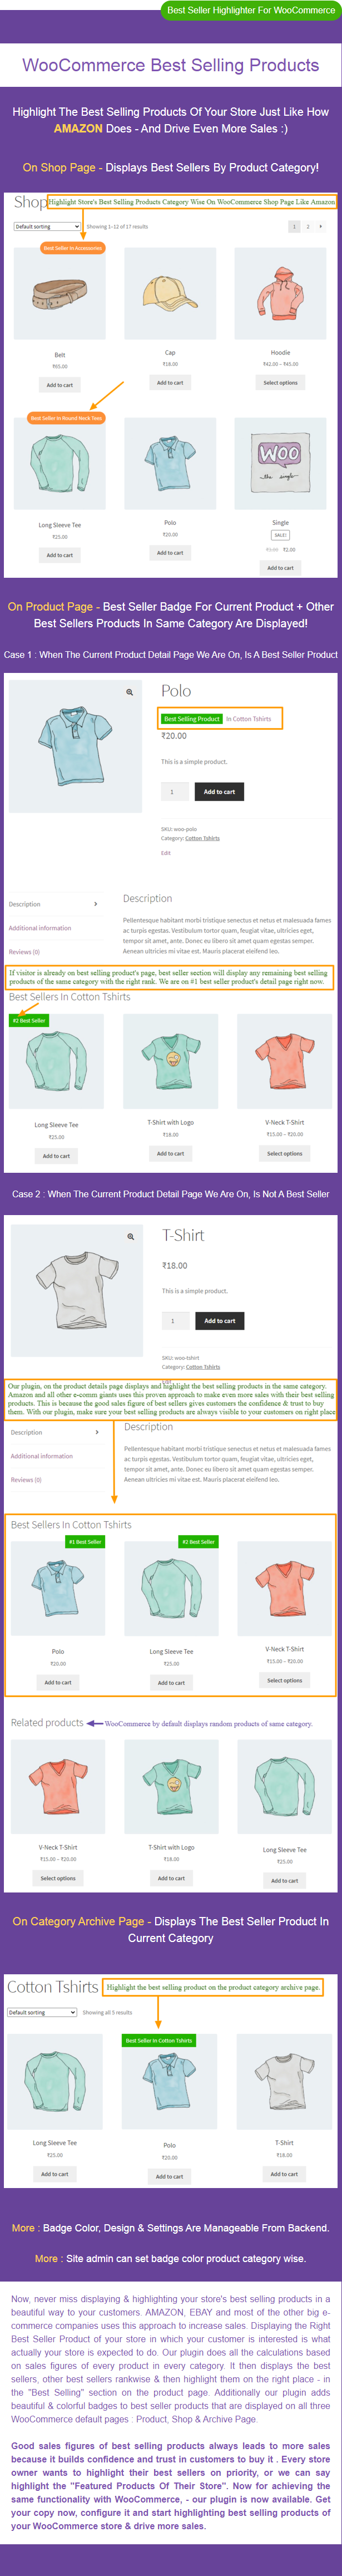 WooCommerce Best Selling Products - 1